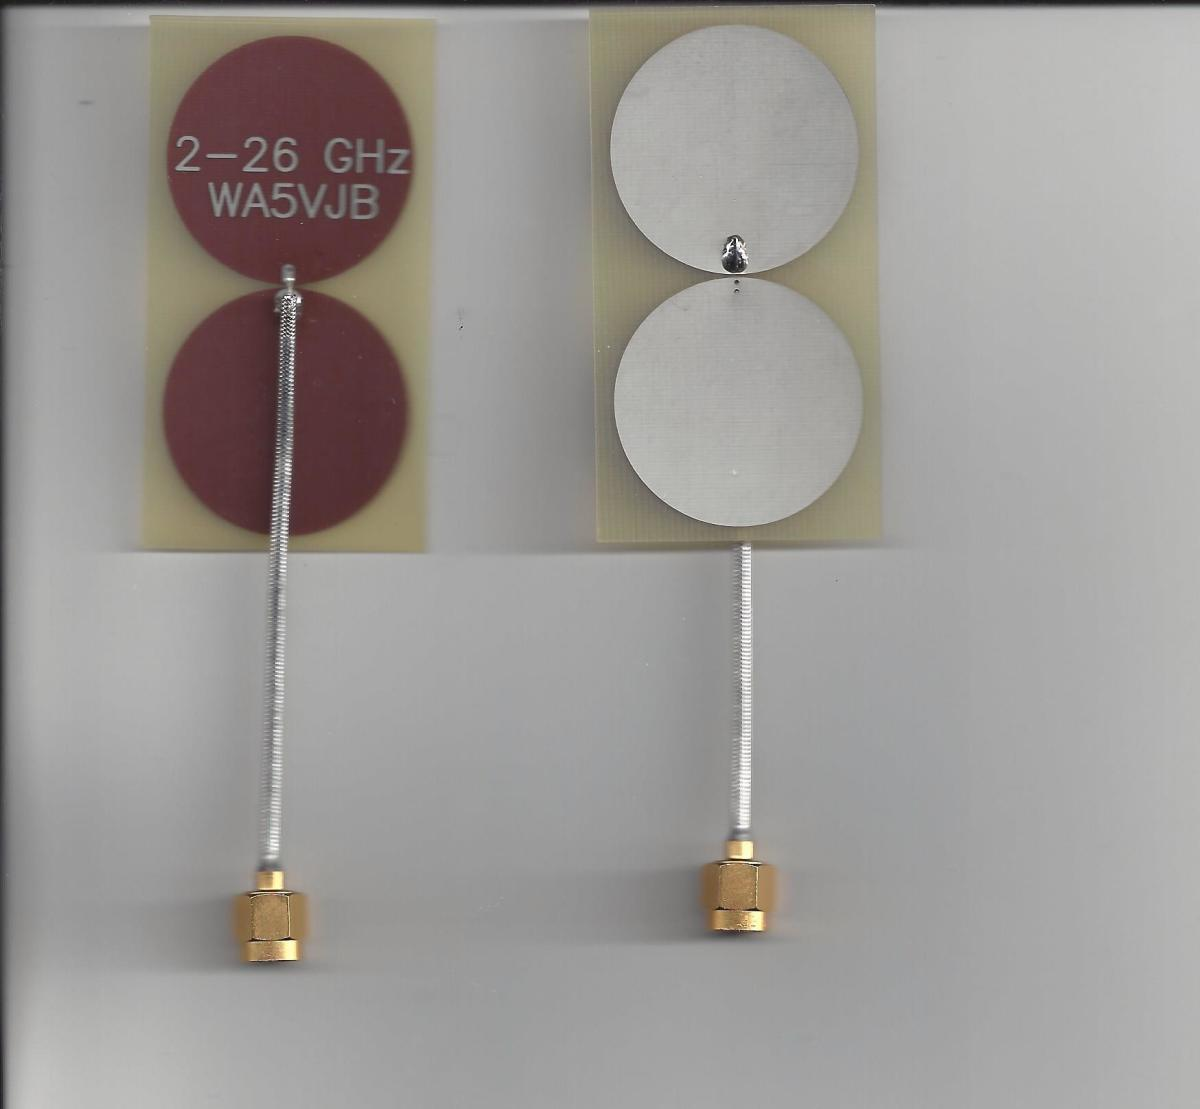 2-26 GHz antenna with a coax connector attached, shown front and back